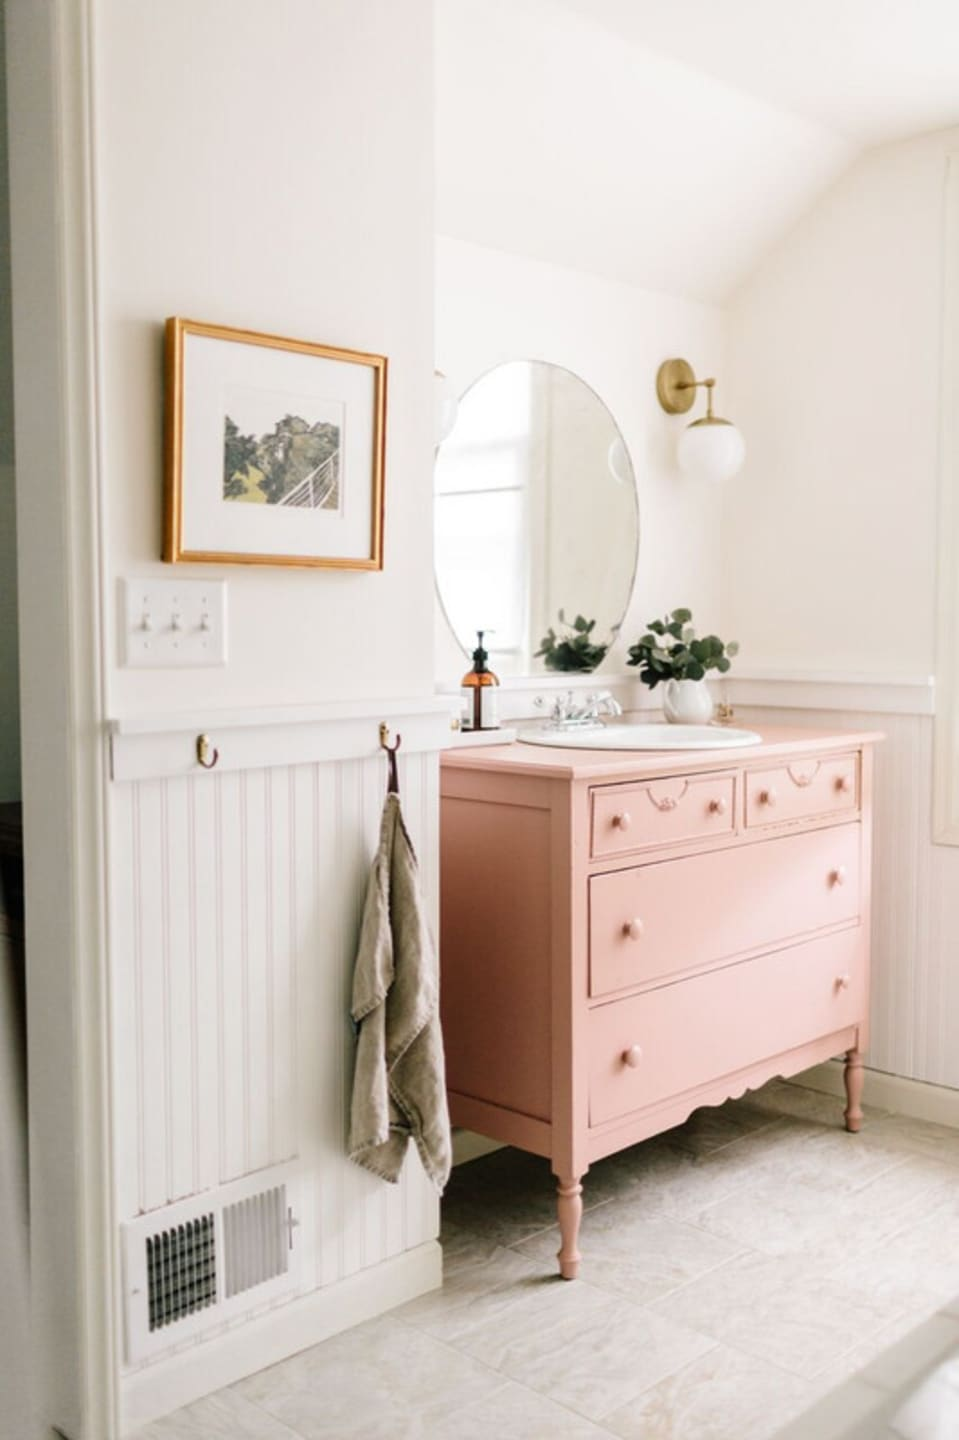 Bathroom Wainscoting – What It Is And How To Use It?